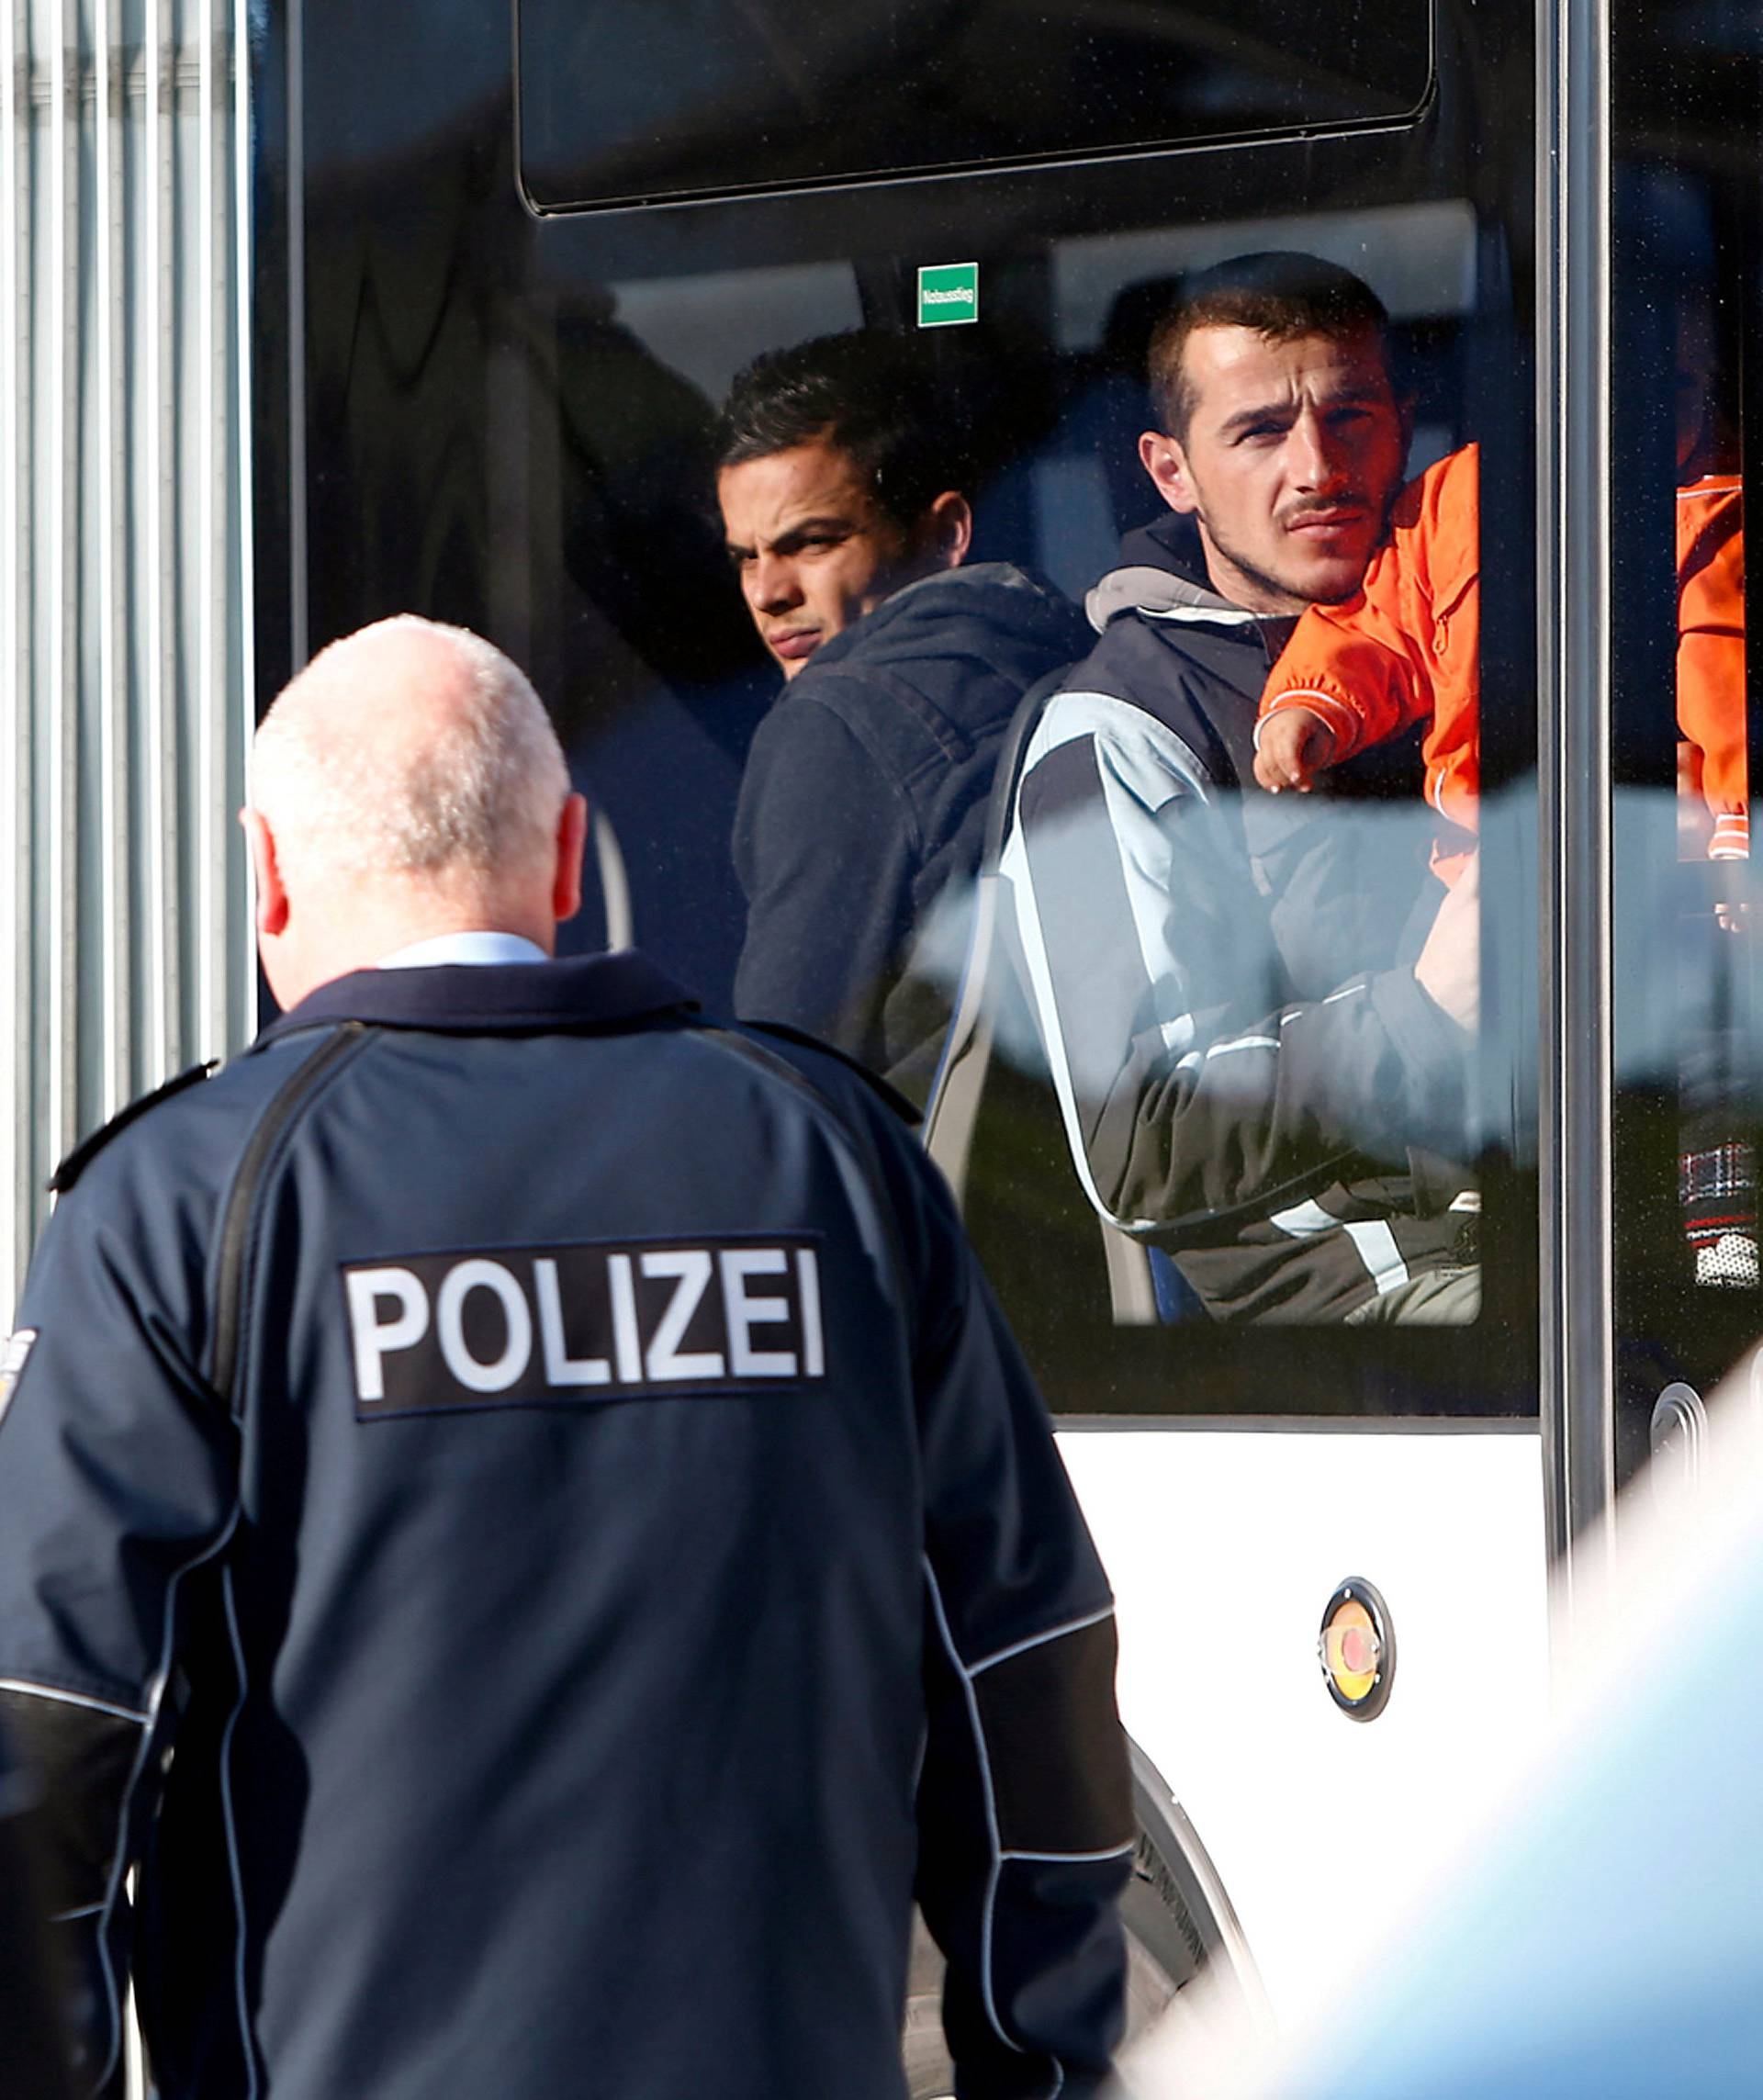 Migrants from Albania and Kosovo are being deported from Munich international airport Germany